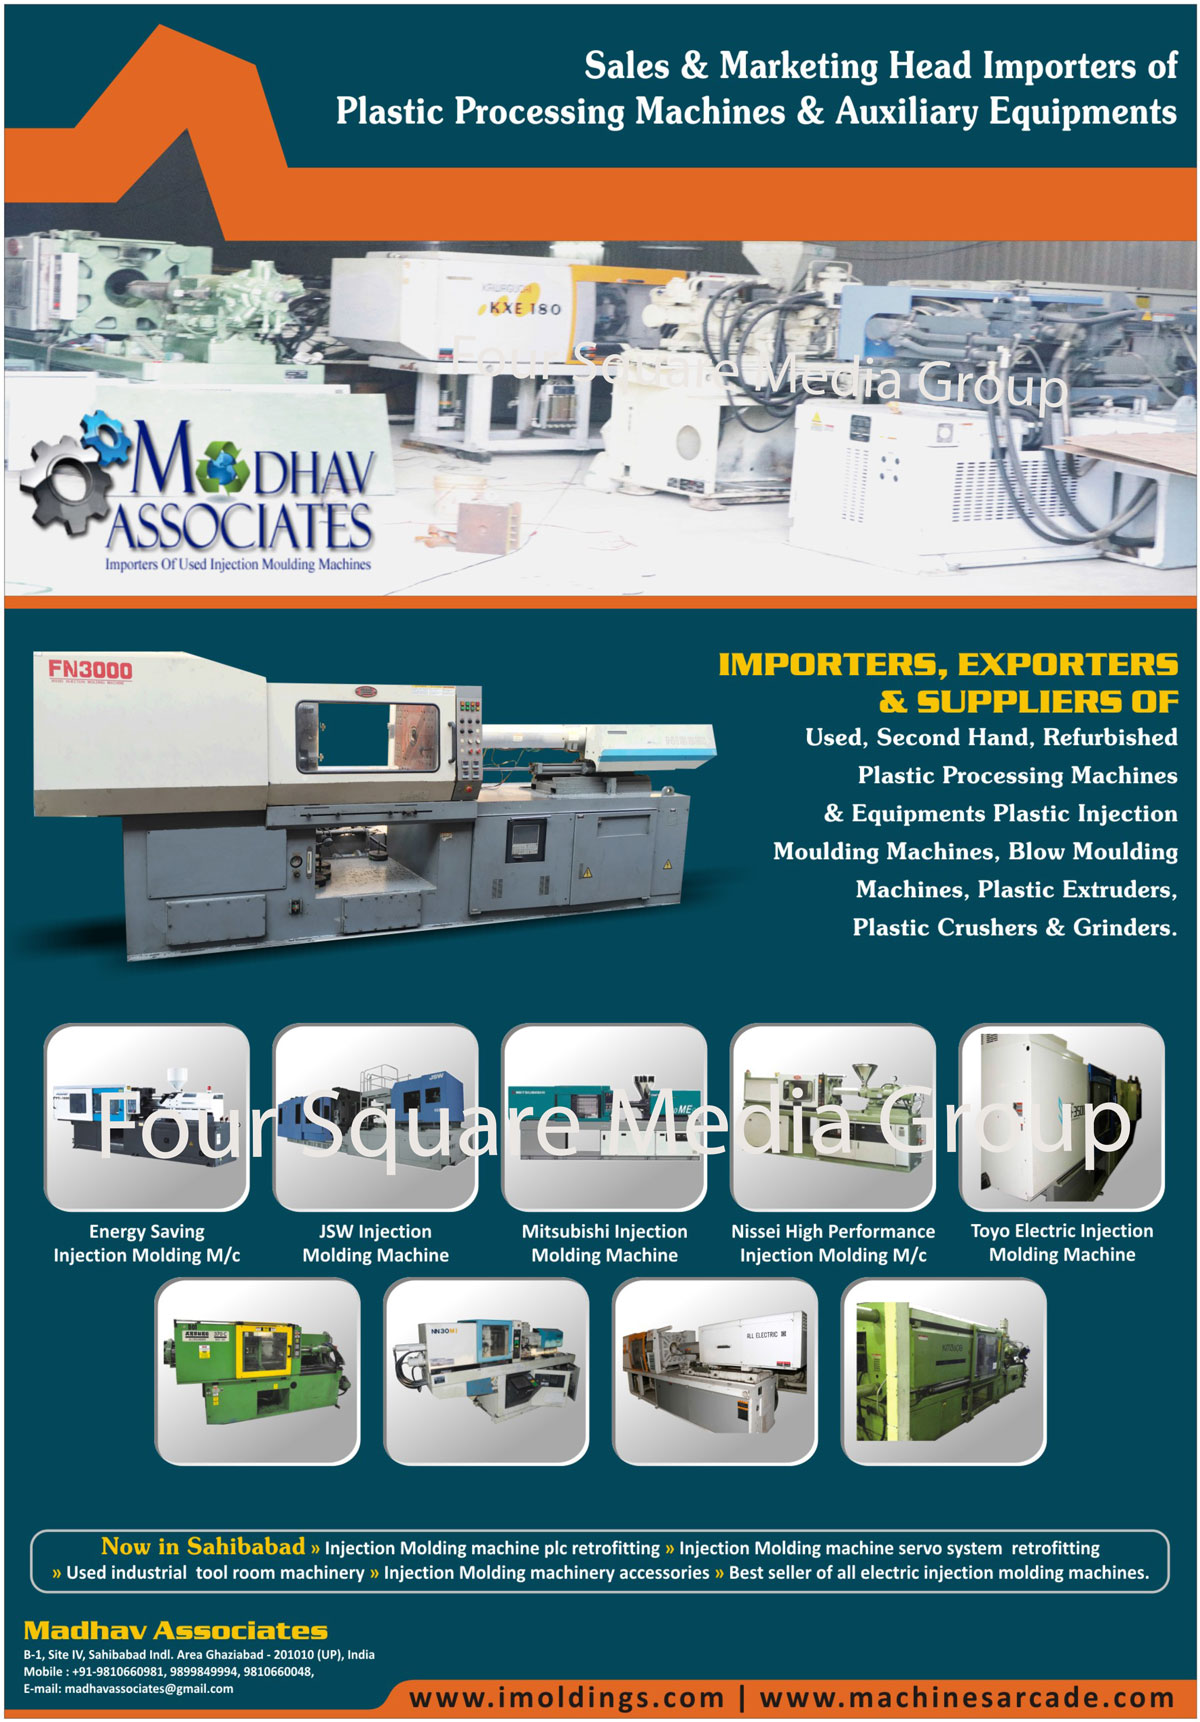 Refurbished Plastic Processing Machinery, Second Hand Plastic Processing Machinery, Used Plastic Processing Machinery, Plastic Processing Equipments, Blow Moulding Machines, Plastic Extruder, Plastic Crushers, Plastic Grinders, Plastic Injection Moulding Machines, Plastic Processing Machines, Refurbished Plastic Processing Equipments